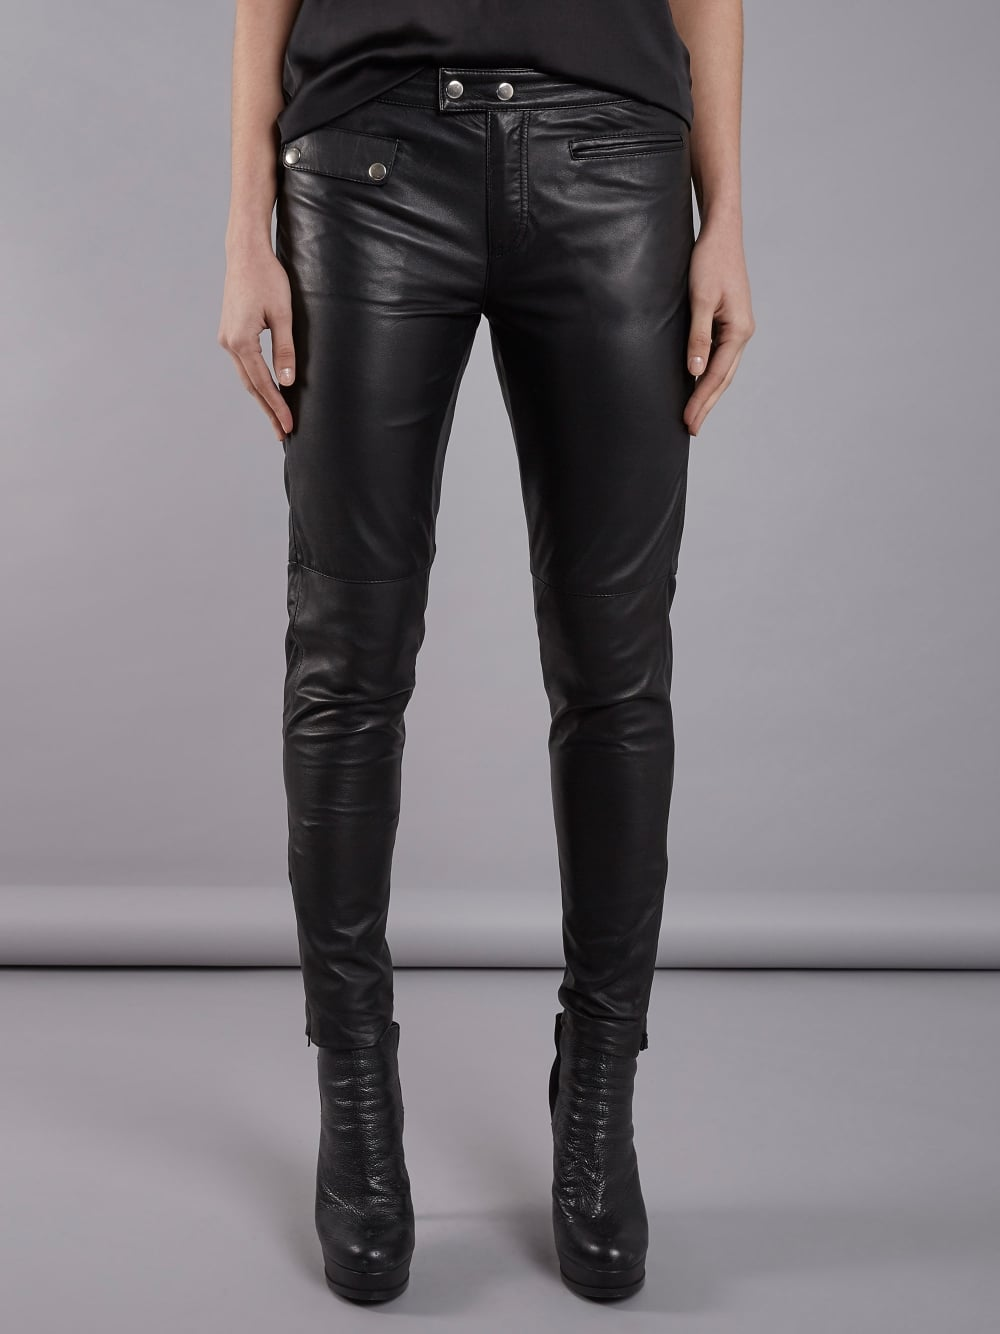 newest collection replicas discount shop Opel Black Leather Skinny Trousers